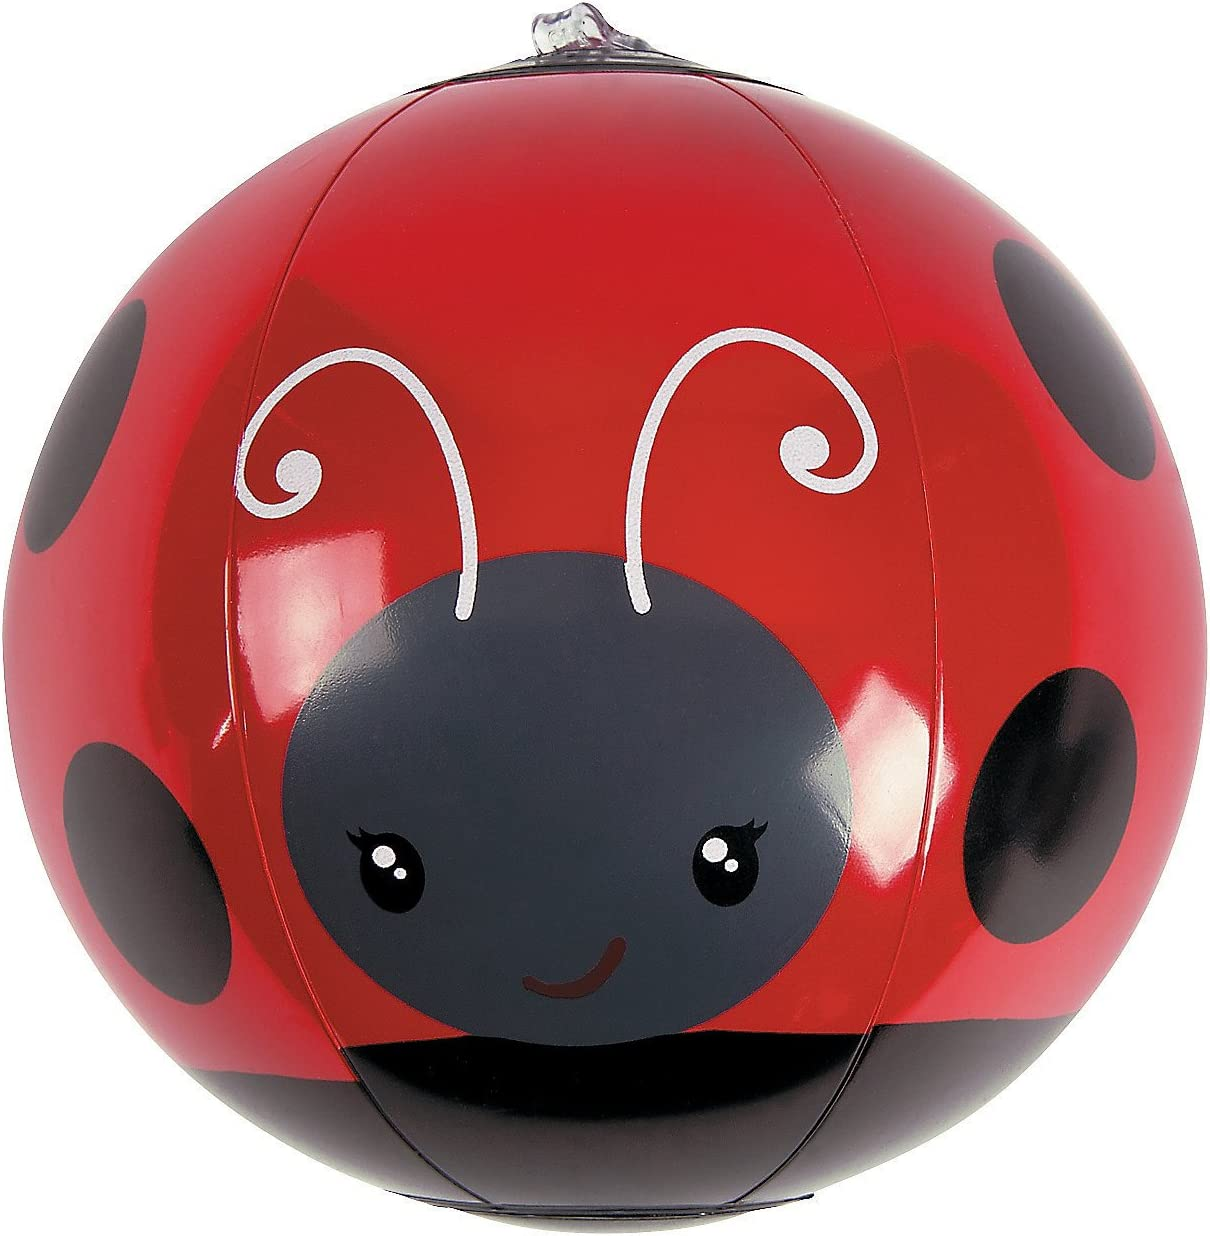 All items in the store Fun Express Mini Ladybug Beach Balls of Max 64% OFF Pool Set and Birthd 12